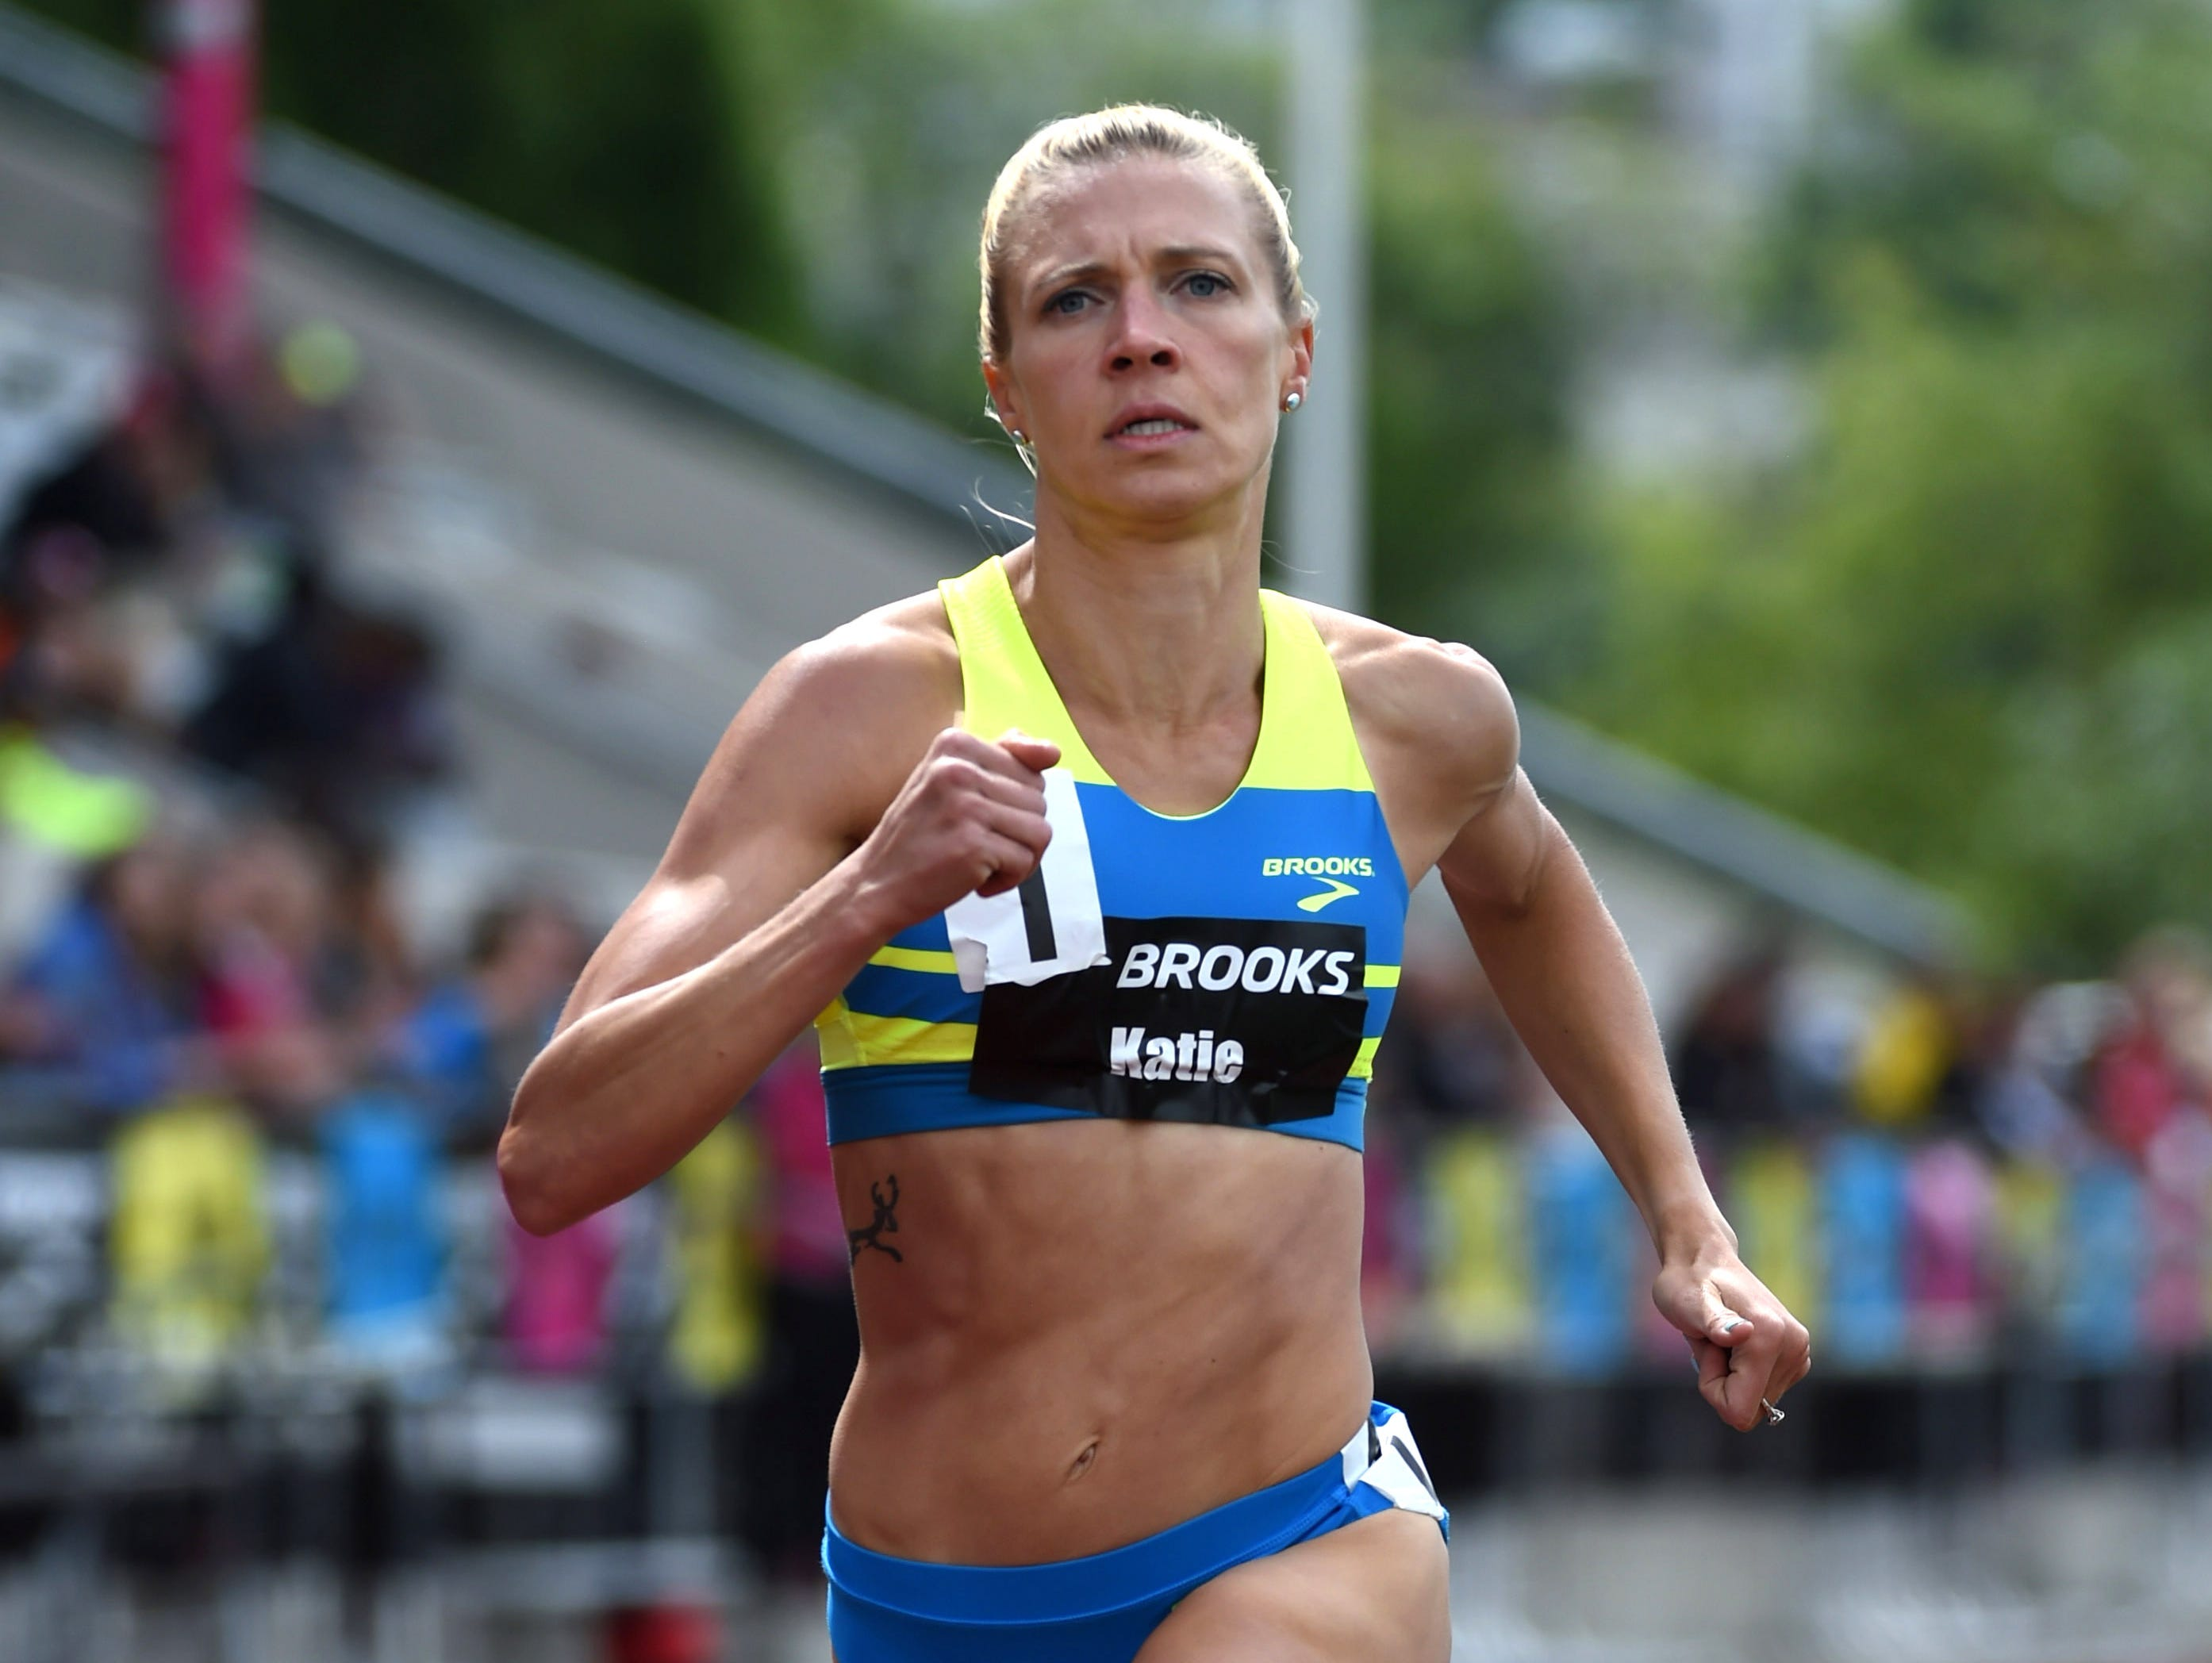 Former Fort Collins High School standout Katie Follett, shown here winning the 1,500 at a meet June 18 in Renton, Washington, had the second-fastest qualifying time in the 5,000 Thursday at the U.S. Olympic Trials in Eugene, Oregon. She'll compete for a spot on the U.S. team for the Rio Olympics in the final Sunday night.